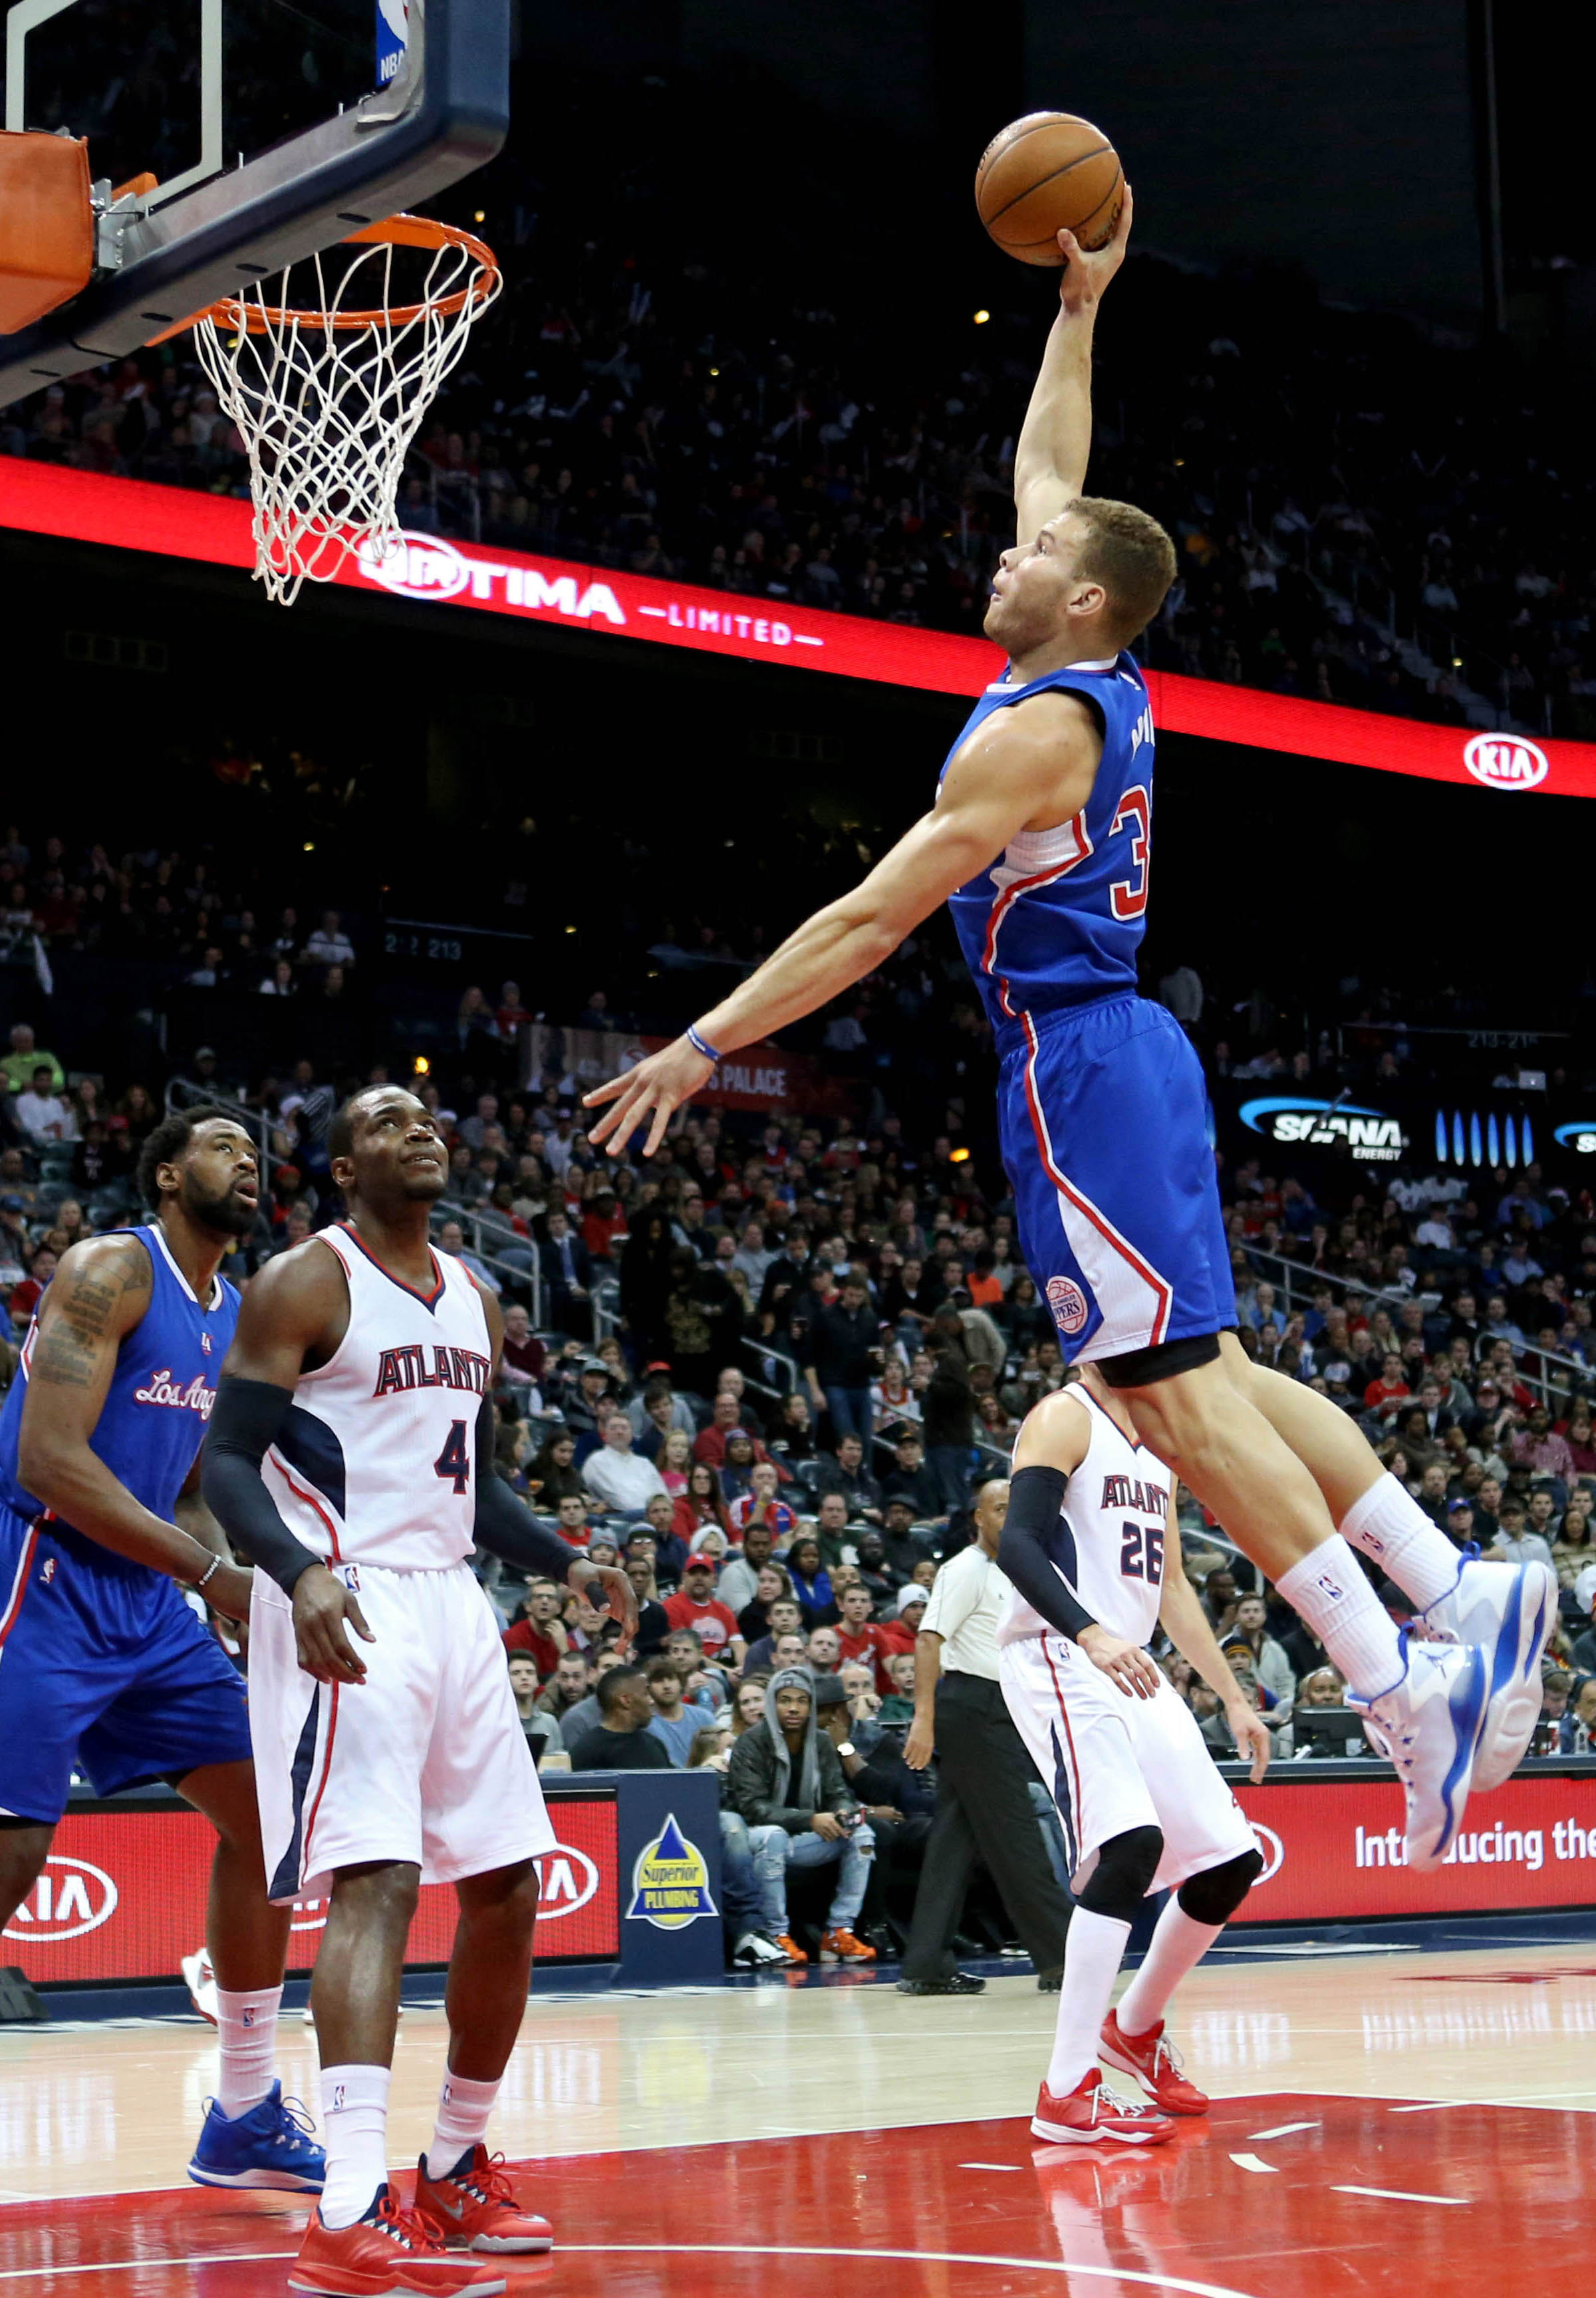 Blake Griffin to return to action against Rockets